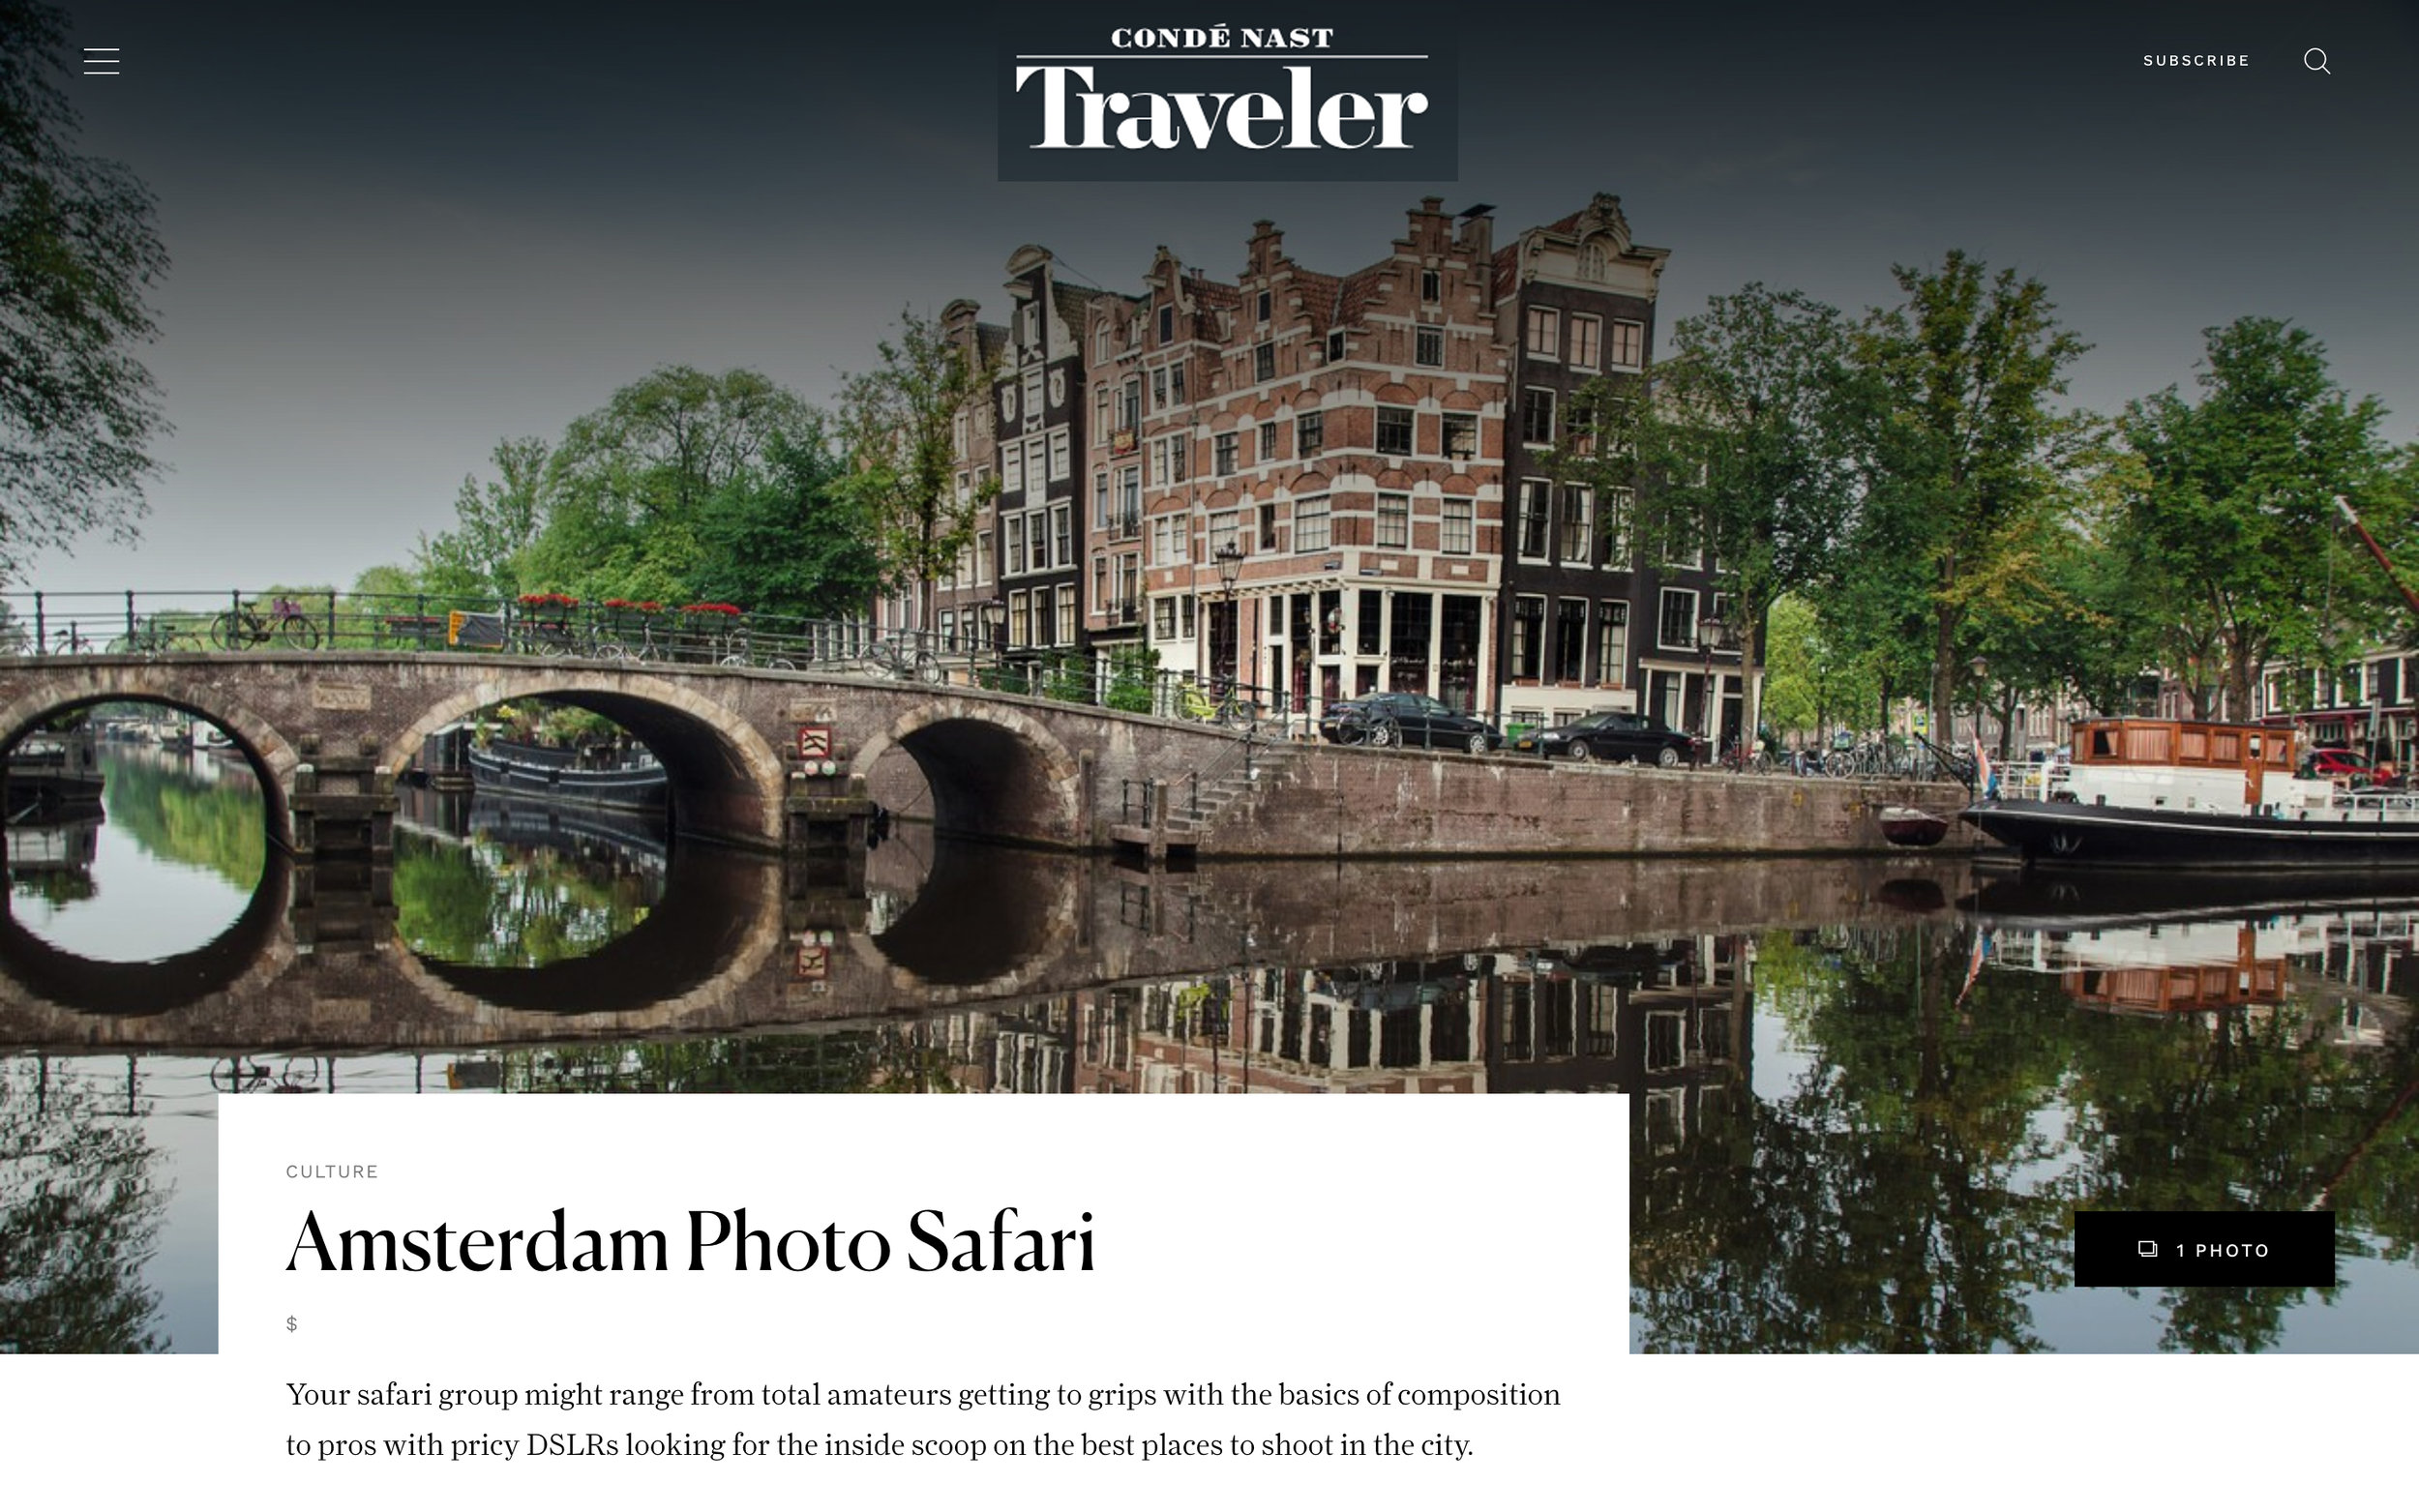 Conde Nast Traveller Magazine - Did you know that we featured in Conde Nast Traveller magazine. They said some really cool things about us. Thanks a lot Conde Nast - we love ya too!